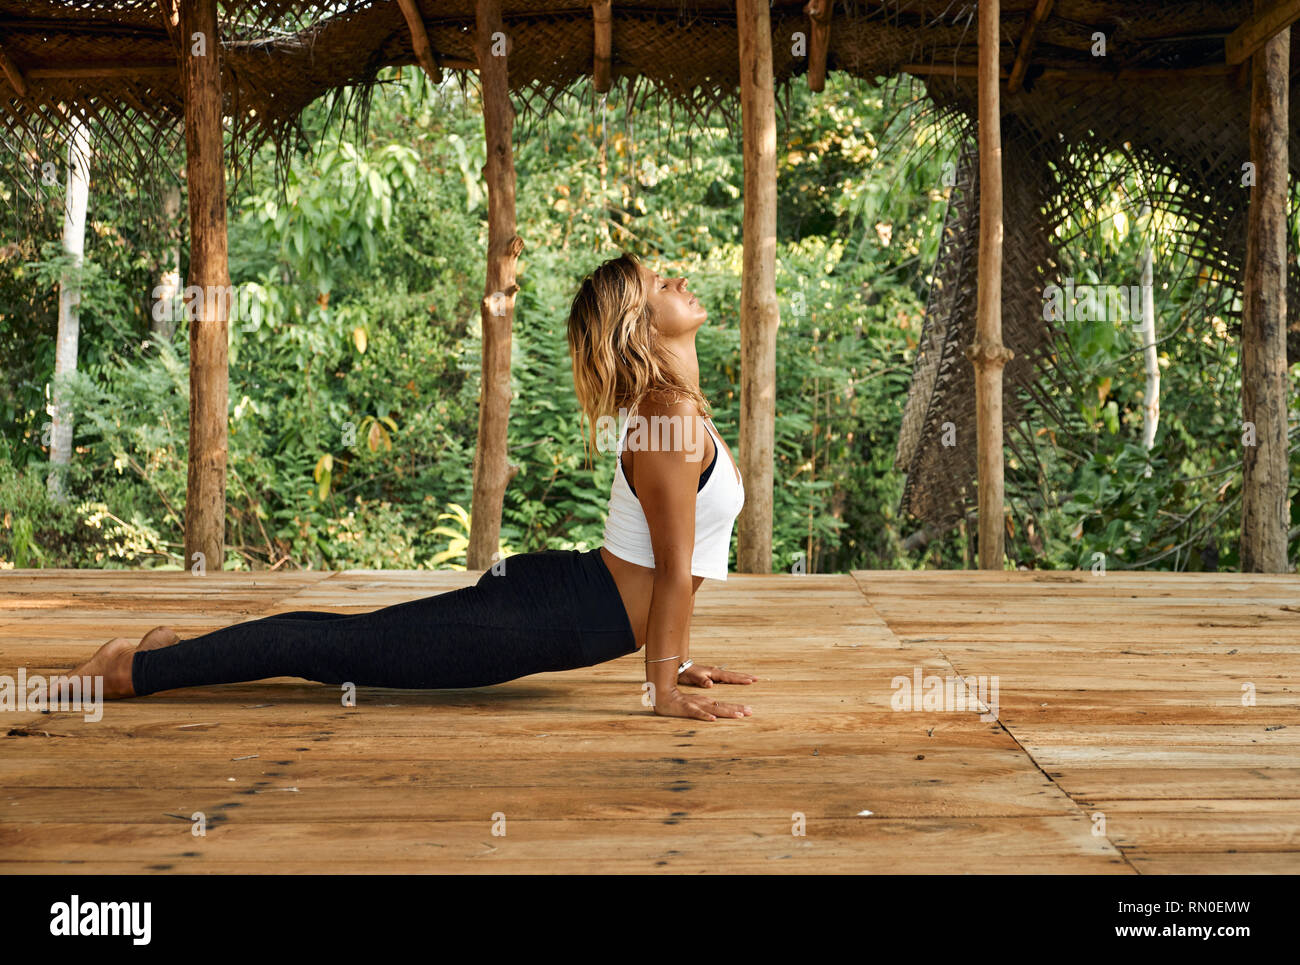 Woman Practicing Yoga In Tropical Open Yoga Studio Place Stock Photo Alamy